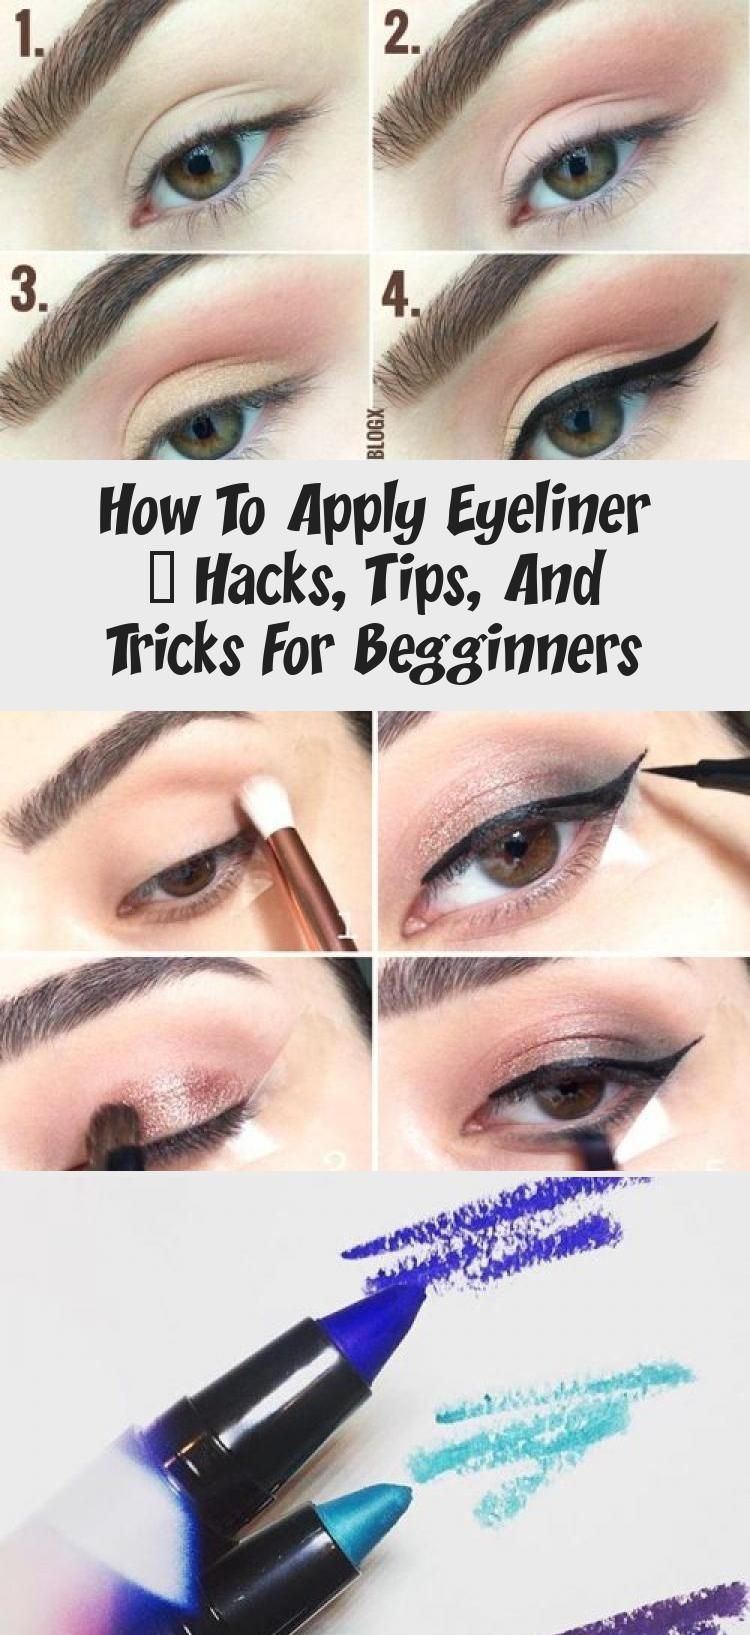 How To Apply Eyeliner – Hacks, Tips, And Tricks For Begginners